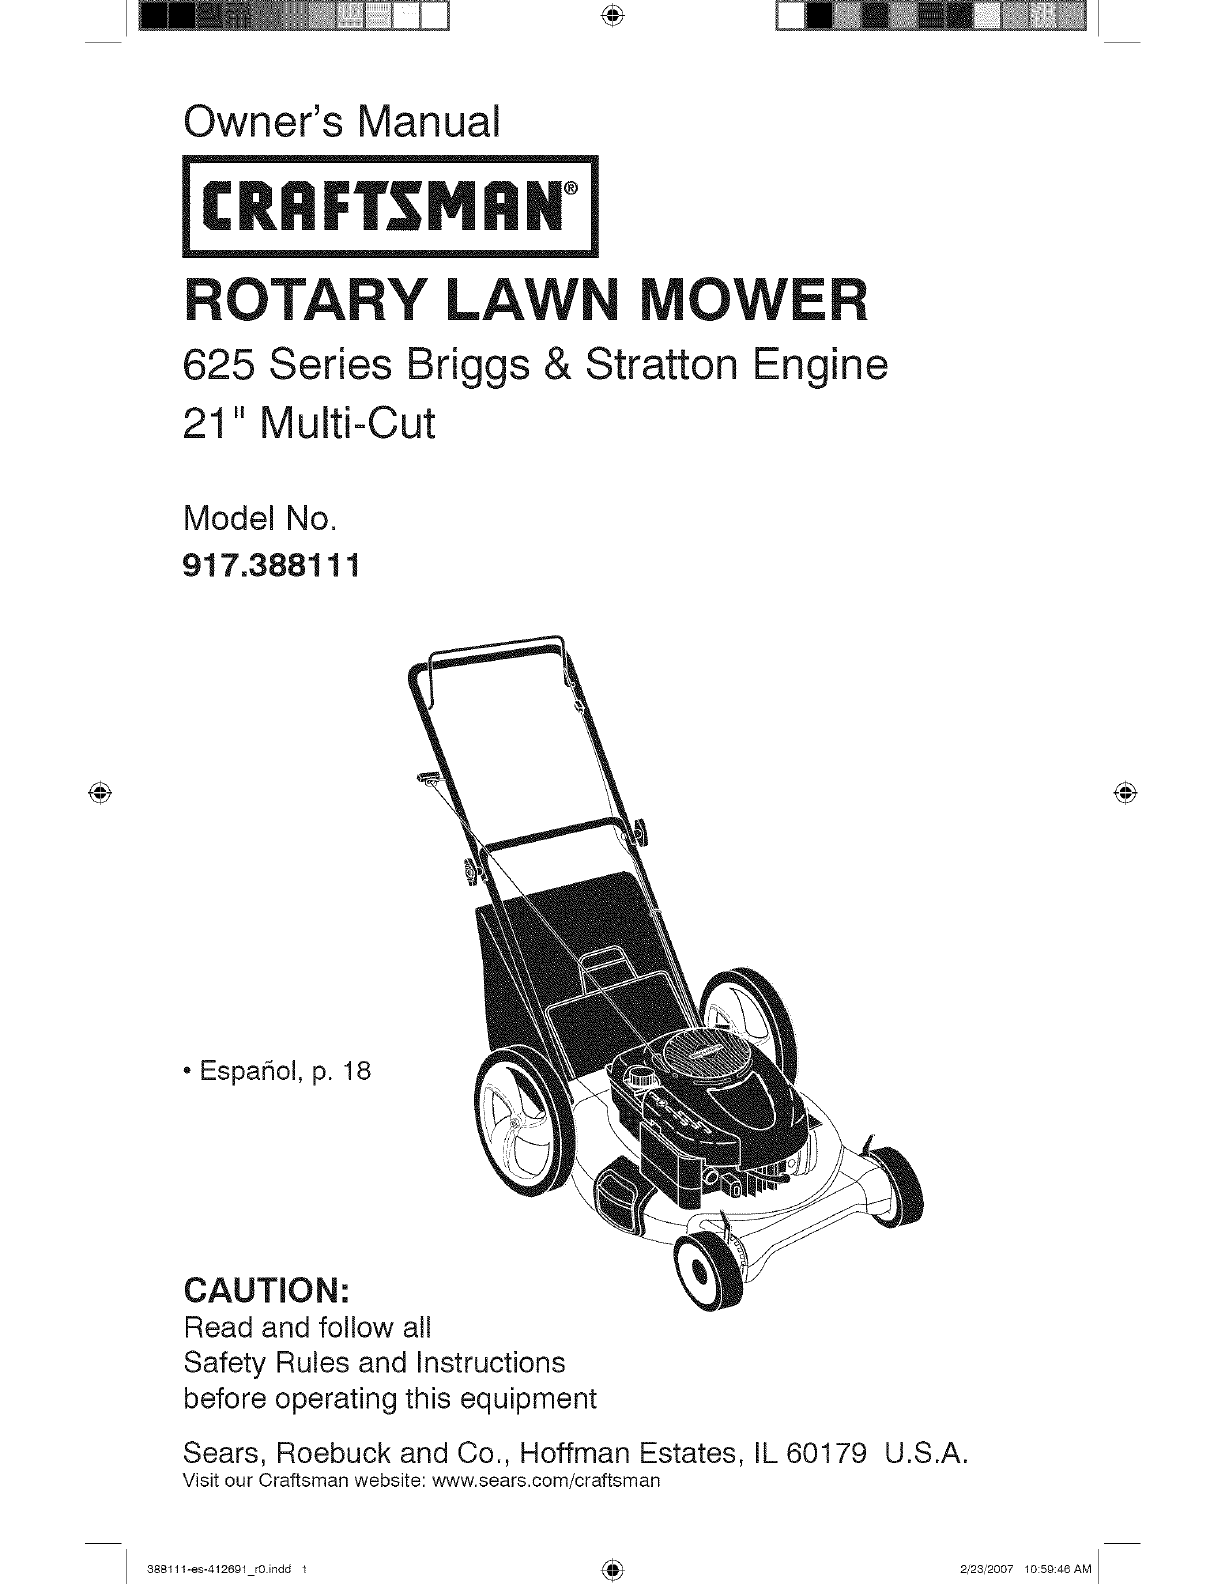 craftsman 625 series manual user guide manual that easy to read u2022 rh sibere co Craftsman Lawn Mower Parts Diagram Craftsman Riding Lawn Mower Engines